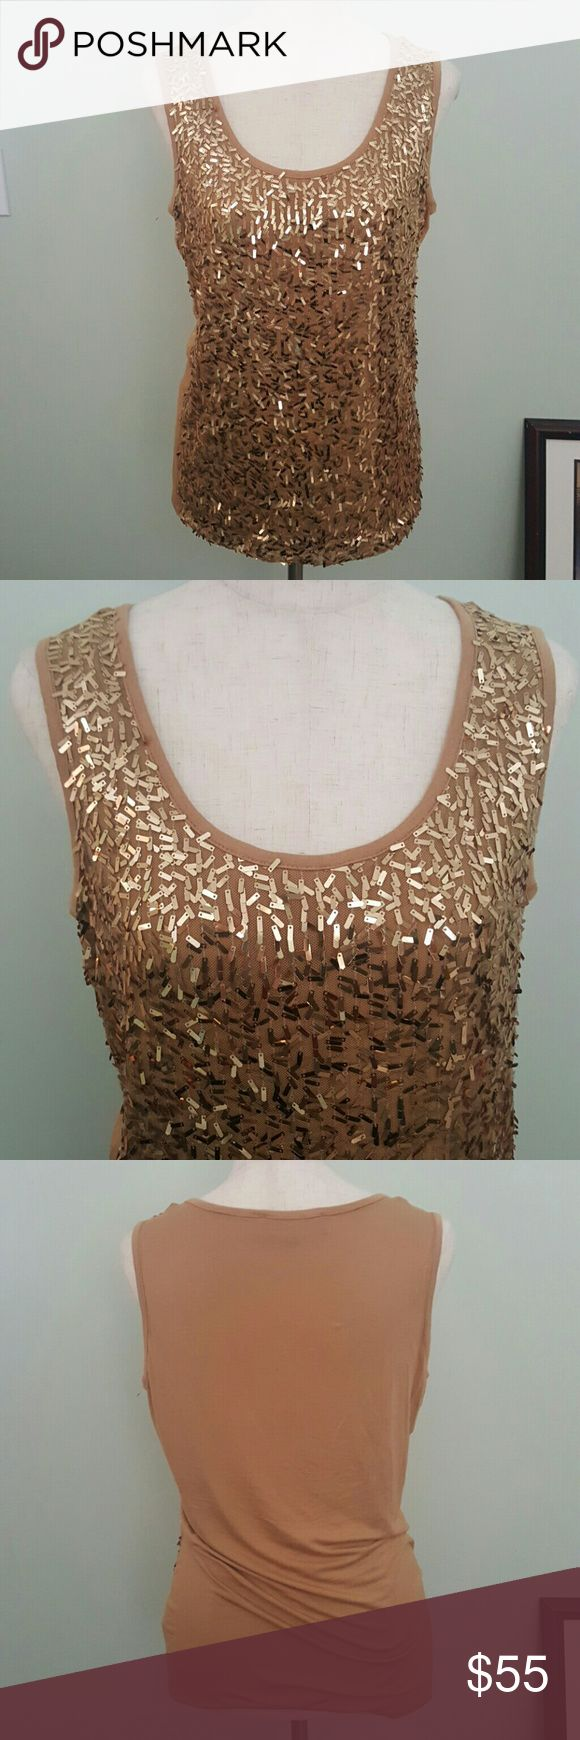 NWOT Gold Confetti Sequin Tank Top Sexy gold tank top. Chest 36 inches. 25.5 inches long. Jones New York Tops Tank Tops